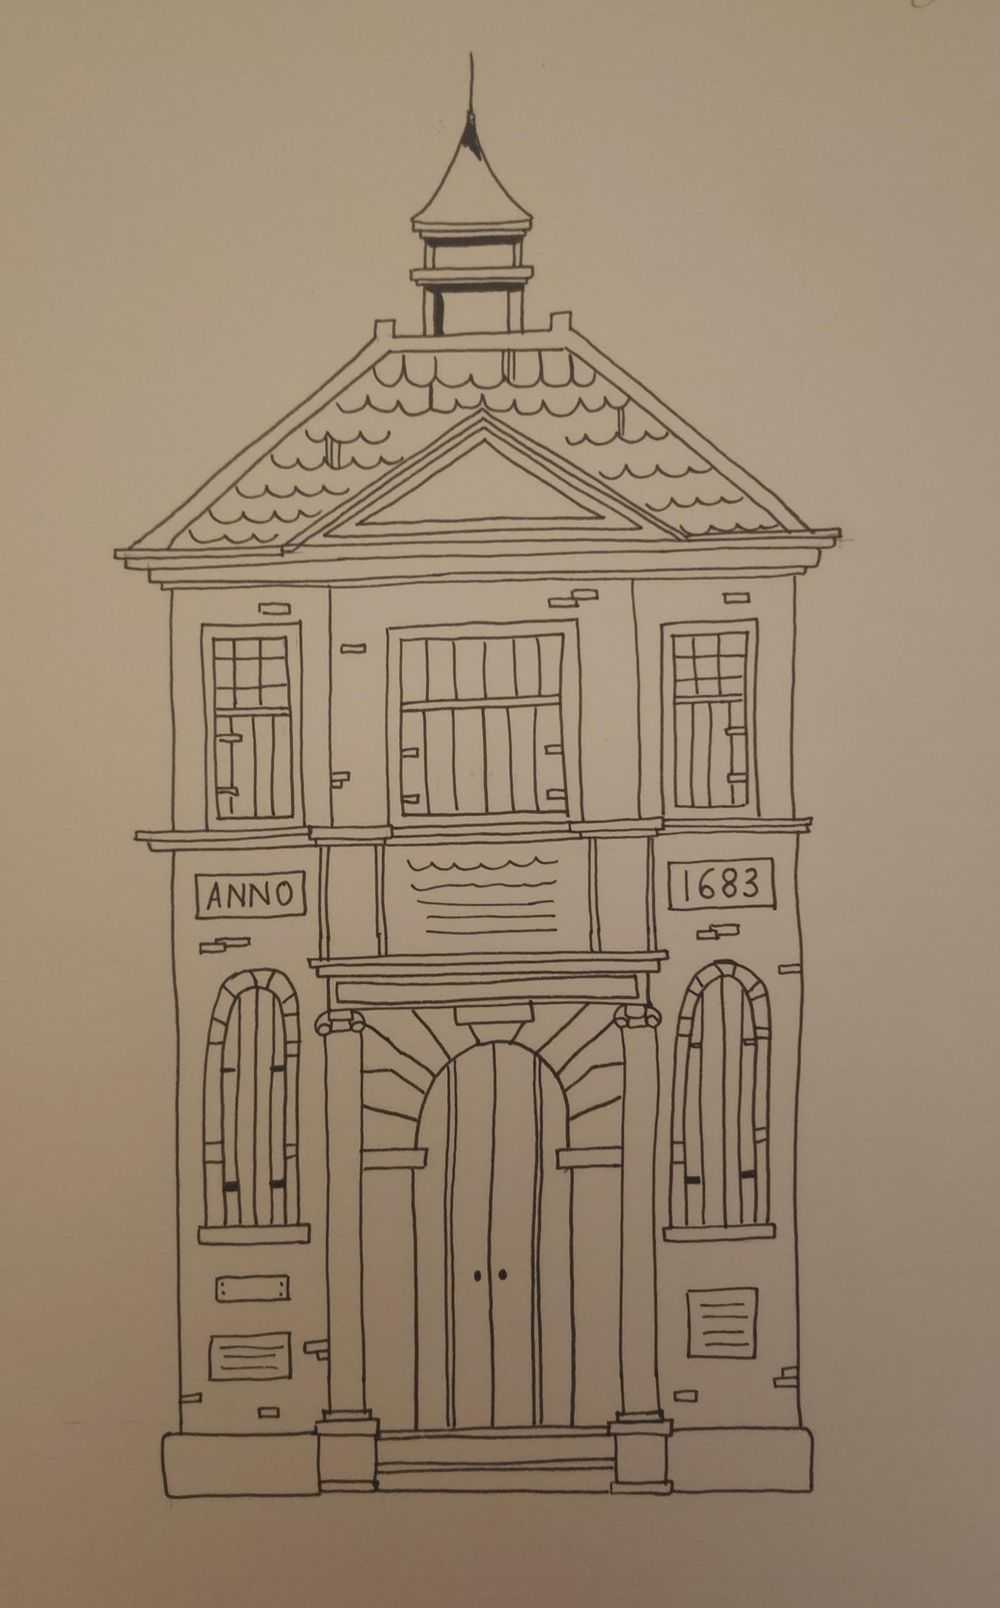 urban sketch - image 2 - student project